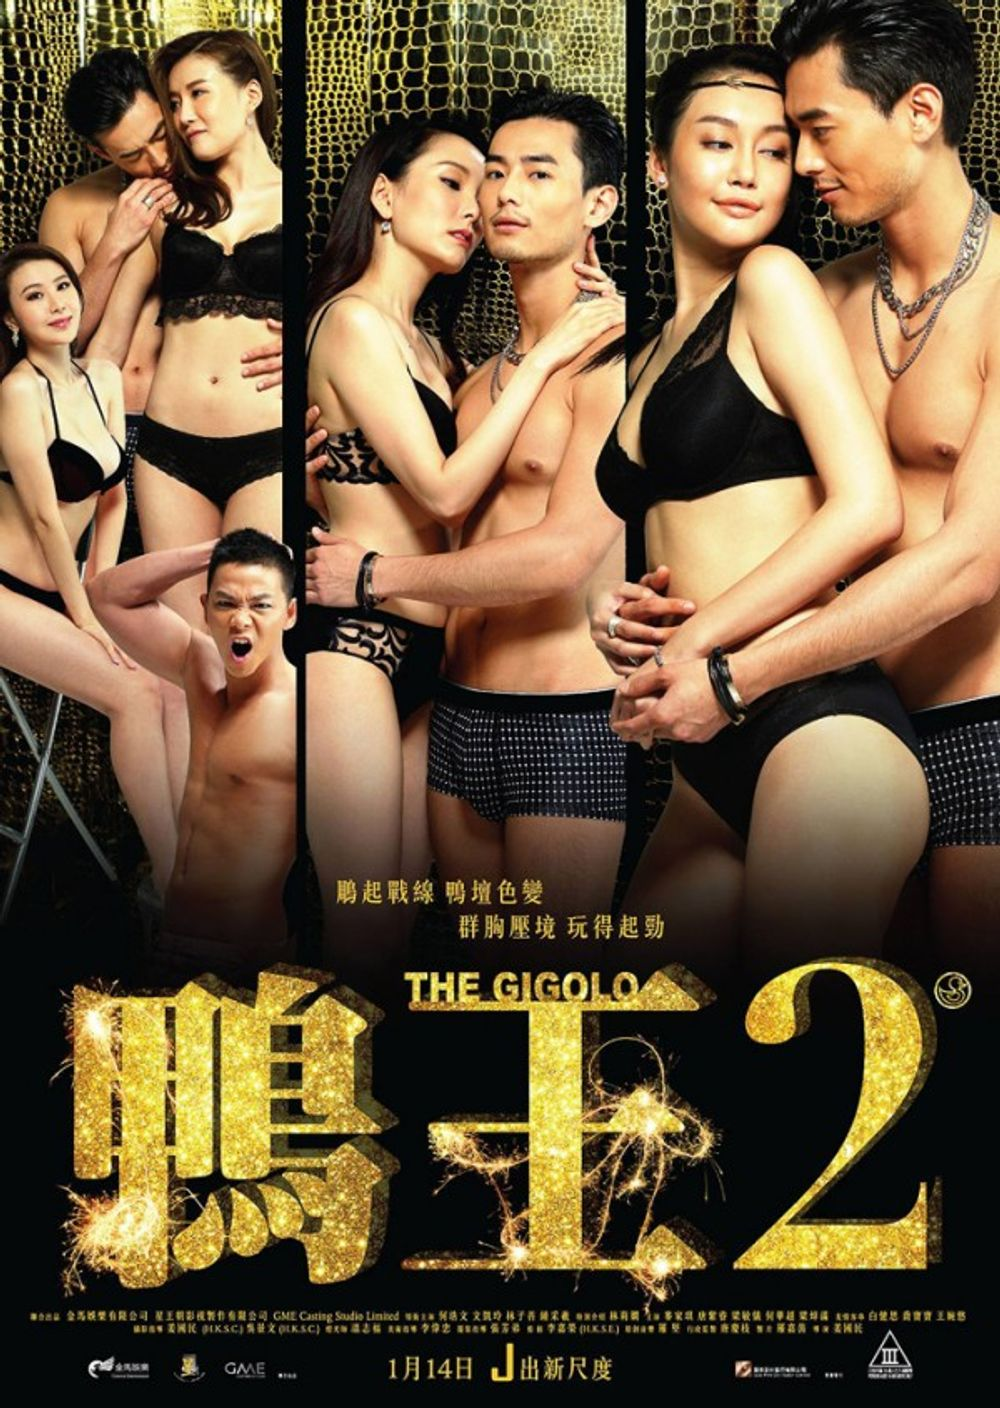 The Gigolo 2 Full CHINA 18+ Watch Movie Online Free